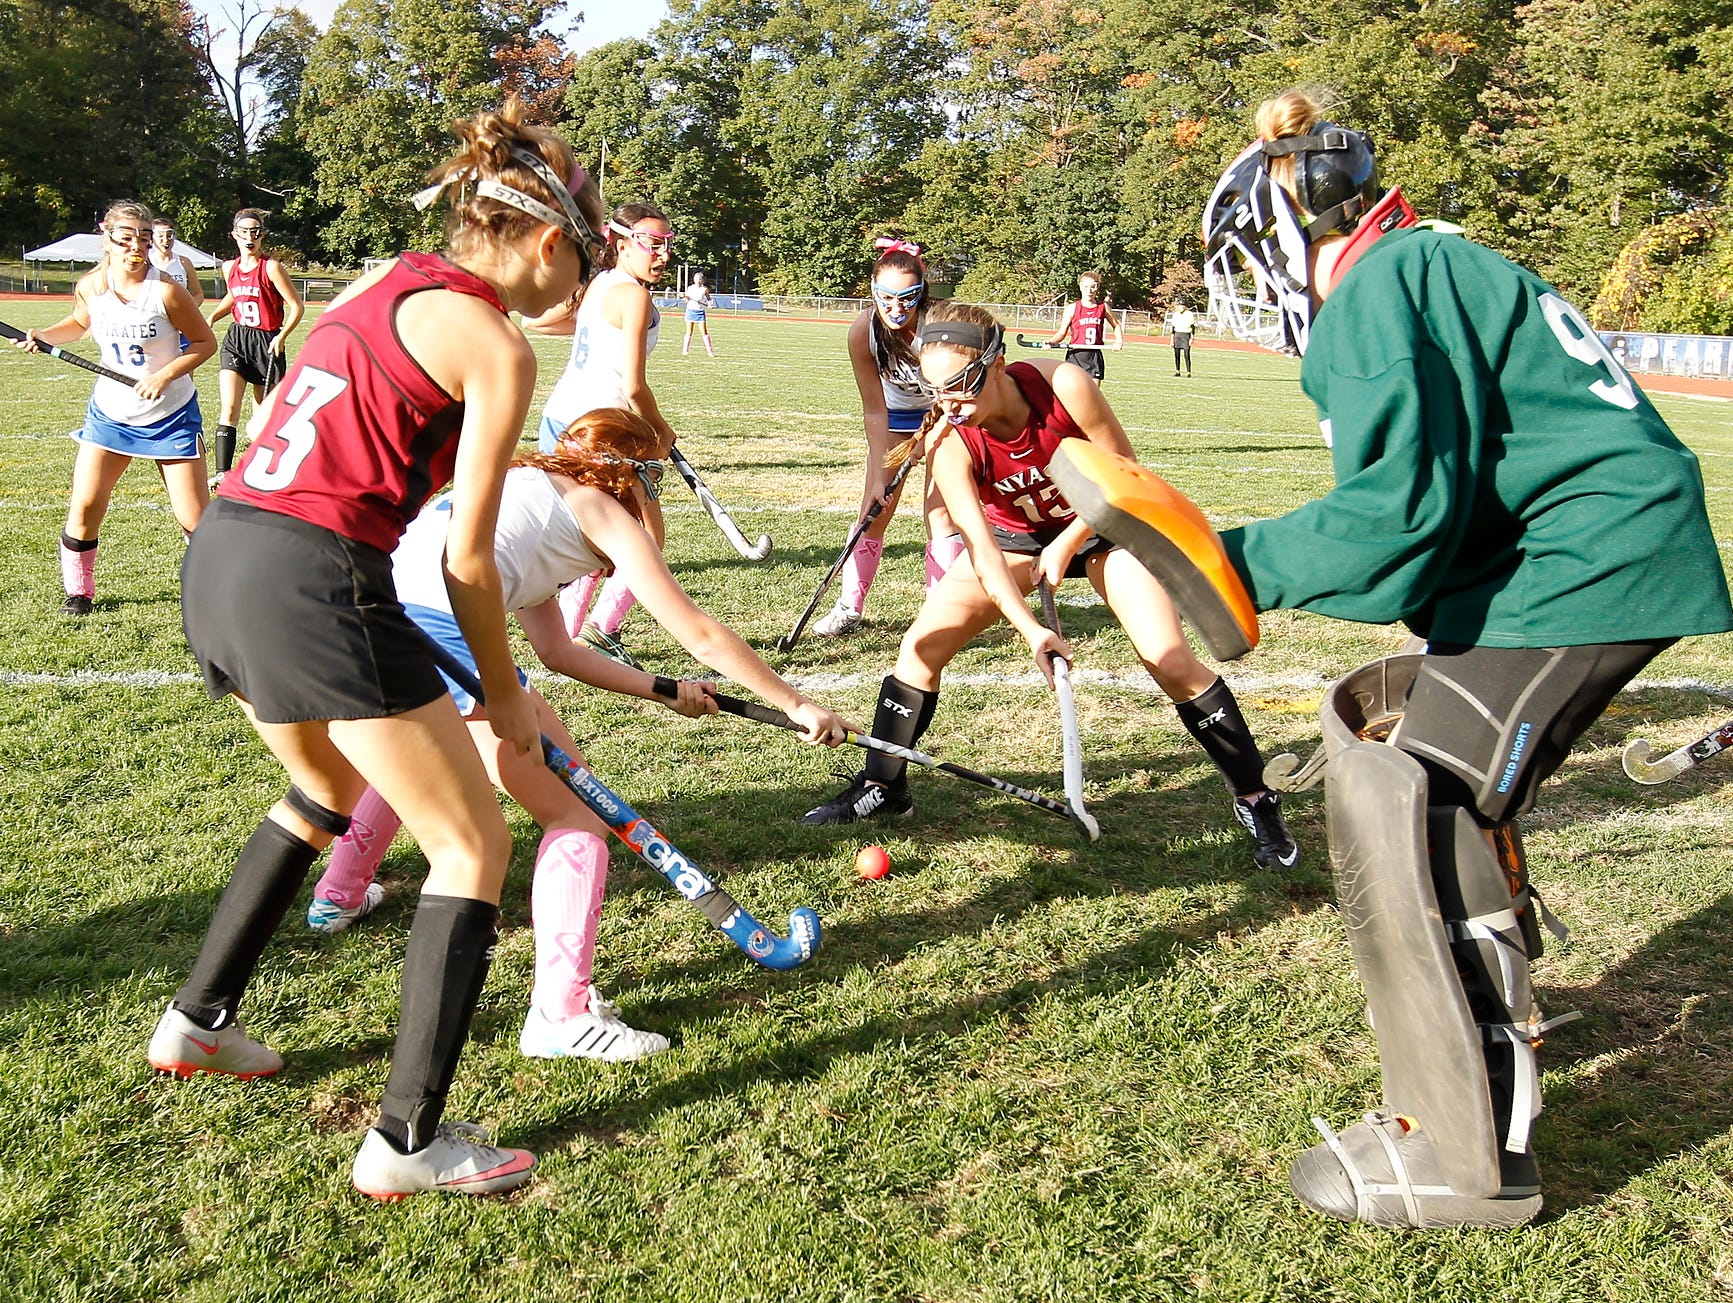 Nyack goalie Calieigh Travers (95) right, awaits a shot during a varsity field hockey game at Pearl River High School on Friday, Oct. 16, 2015.